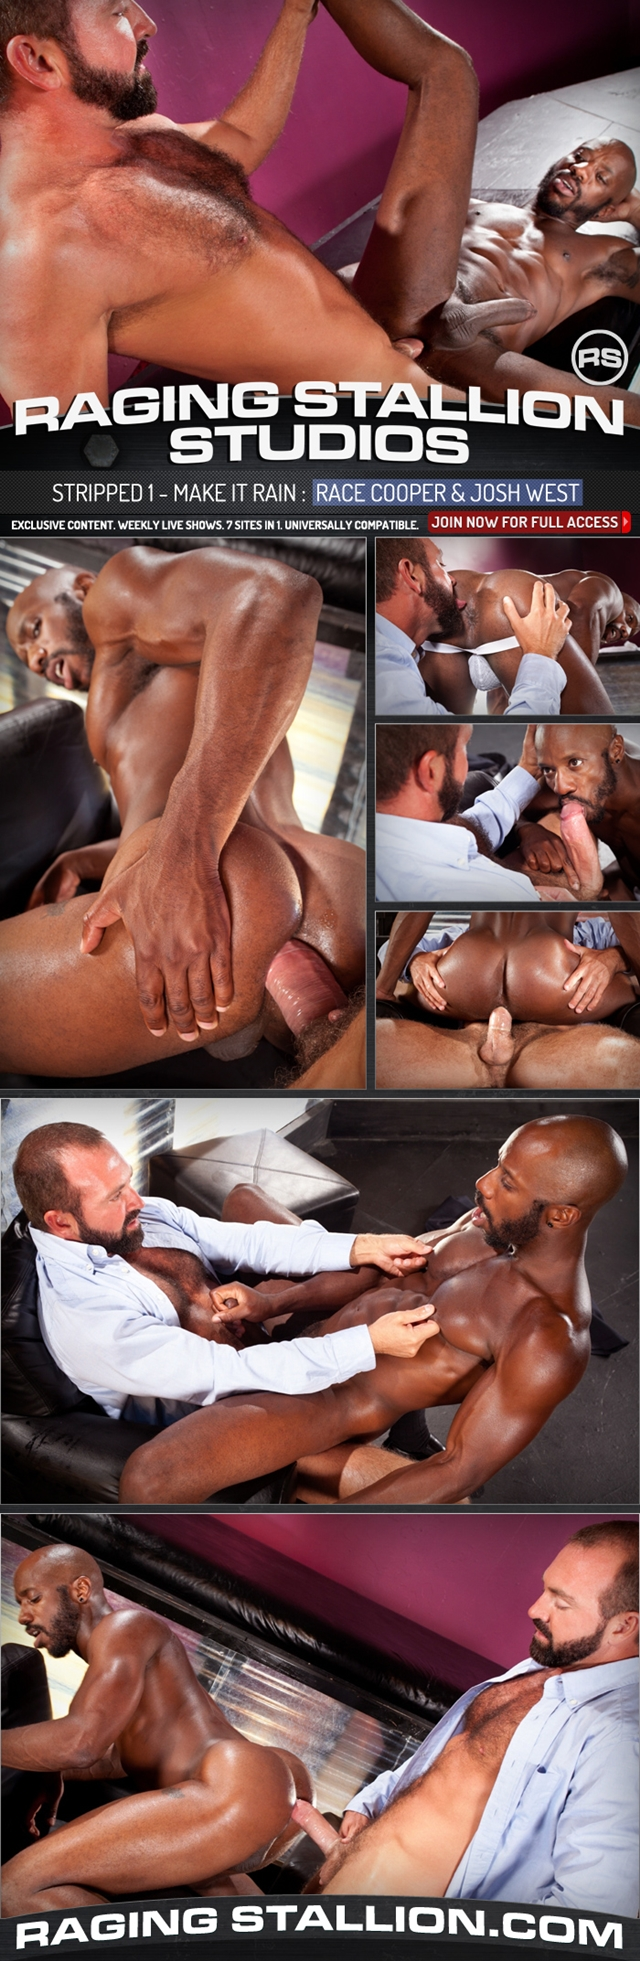 Josh West and Race Cooper at Raging Stallion